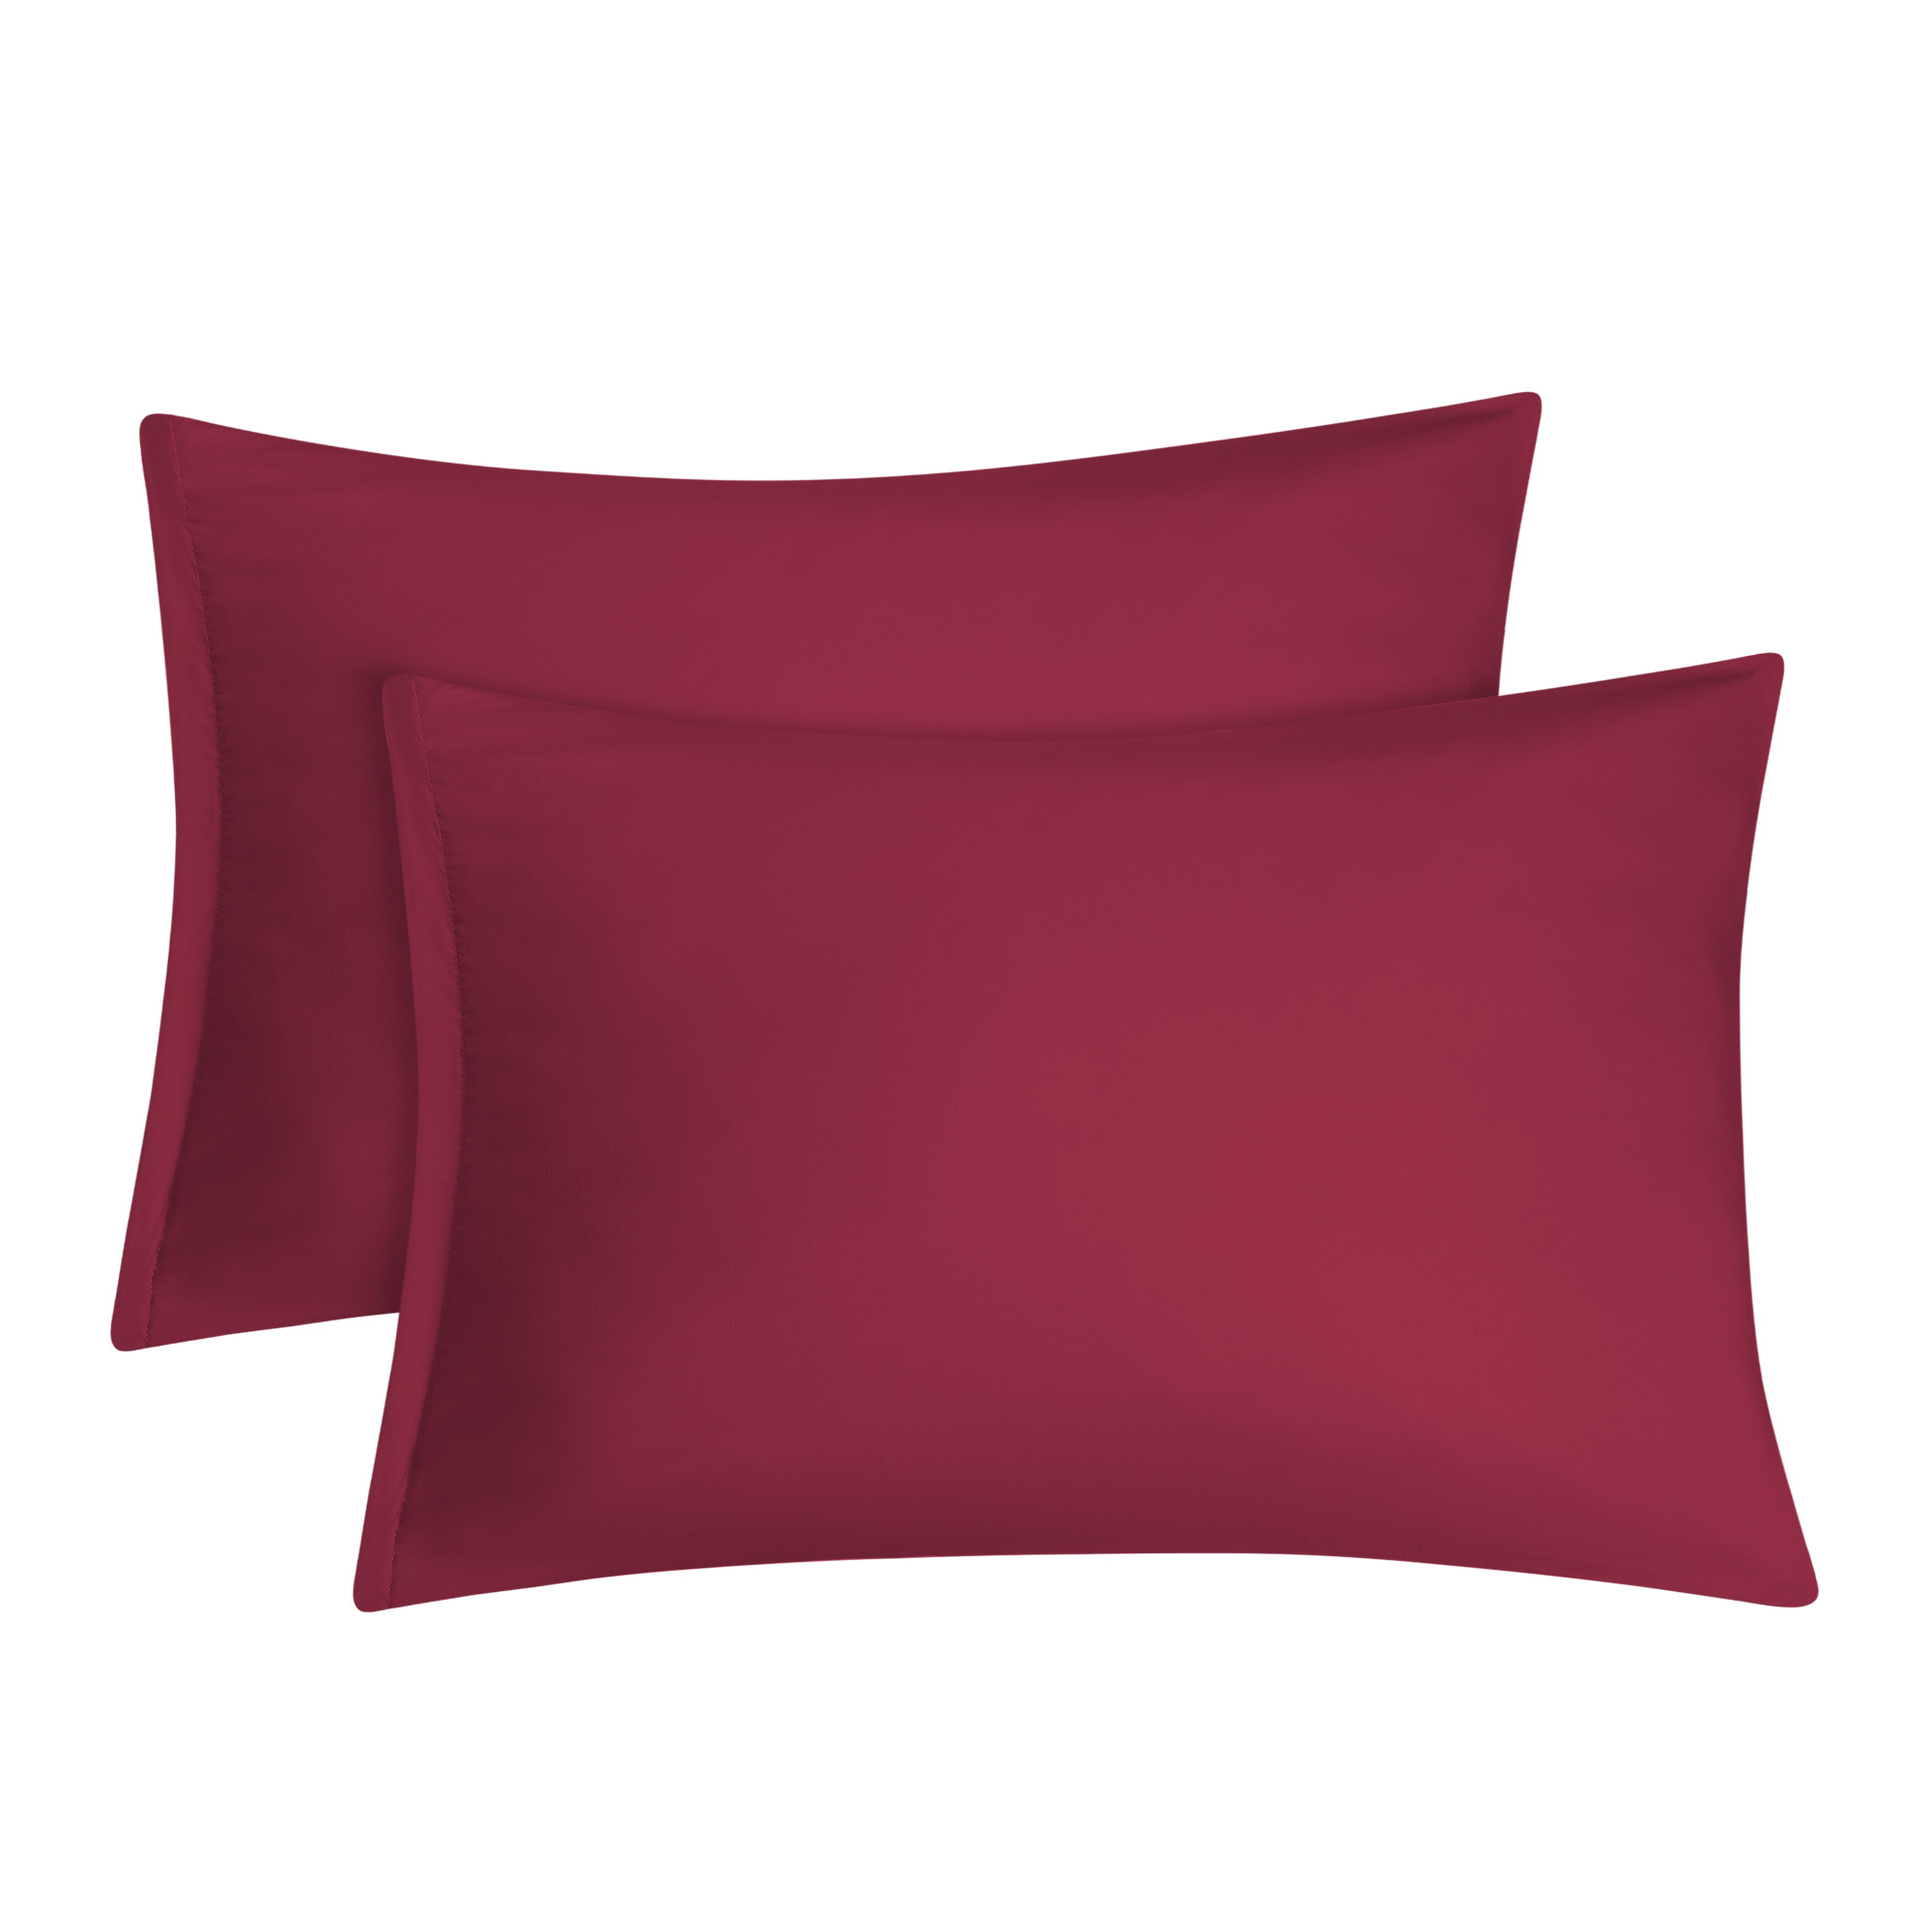 2 pack travel size pillowcases soft 1800 microfiber pillow case with zipper closure burgundy bedding pillow covers